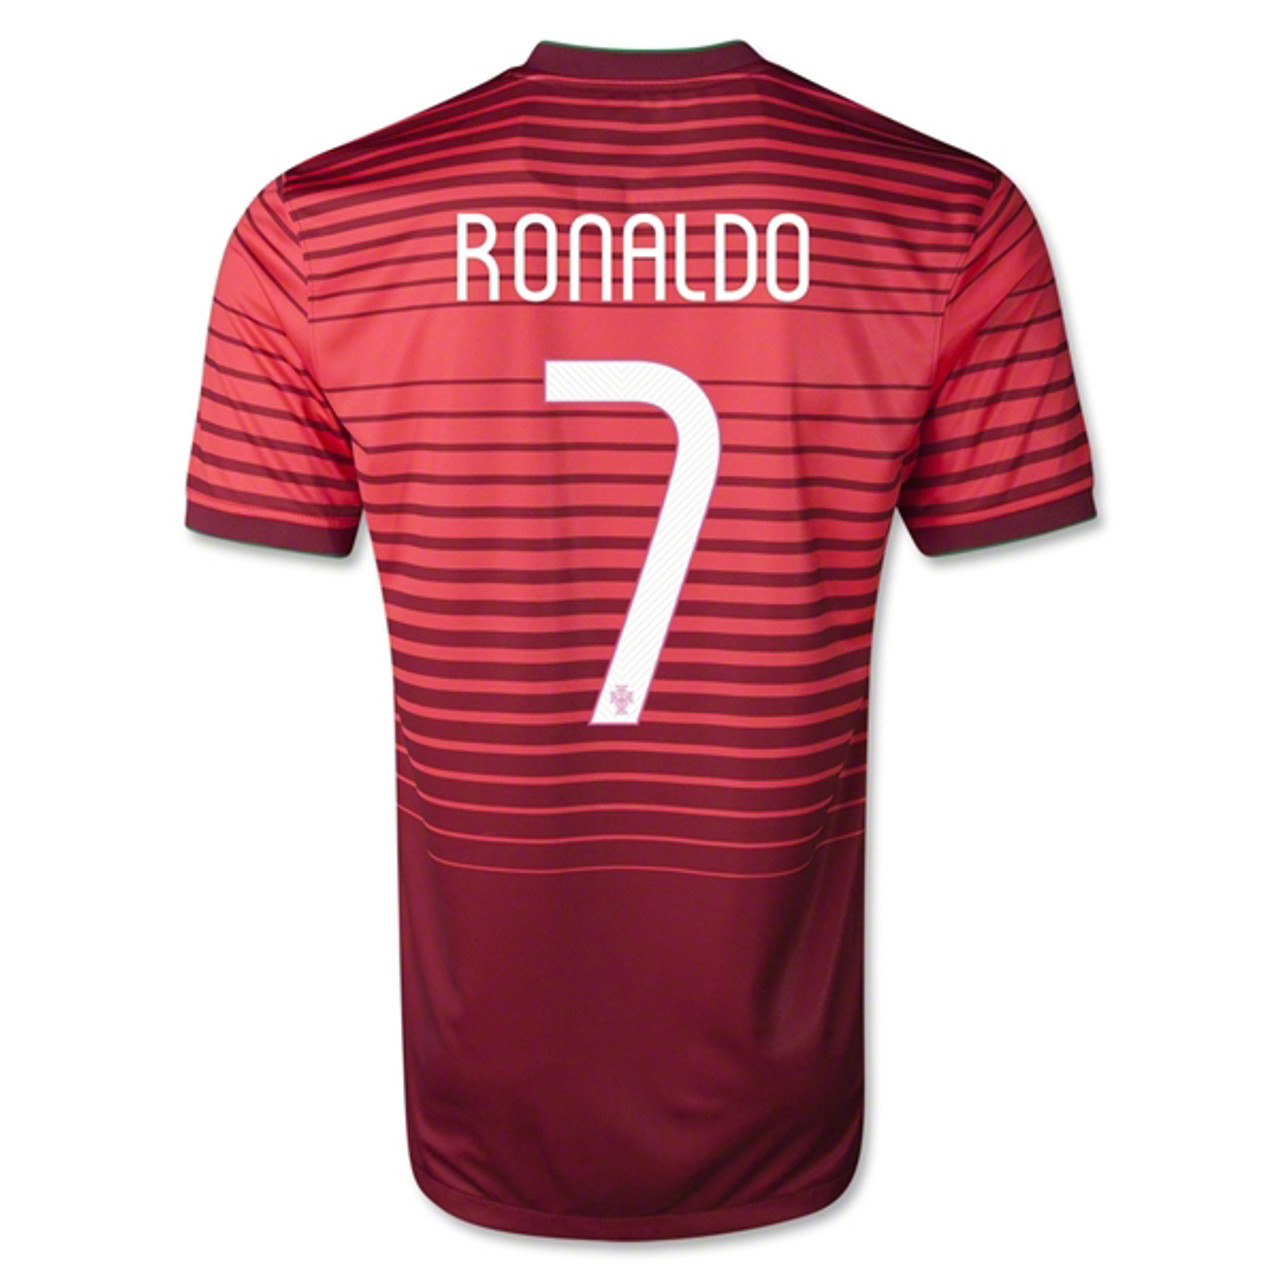 best website 8cd59 064bf NIKE PORTUGAL 2014 HOME RONALDO JERSEY